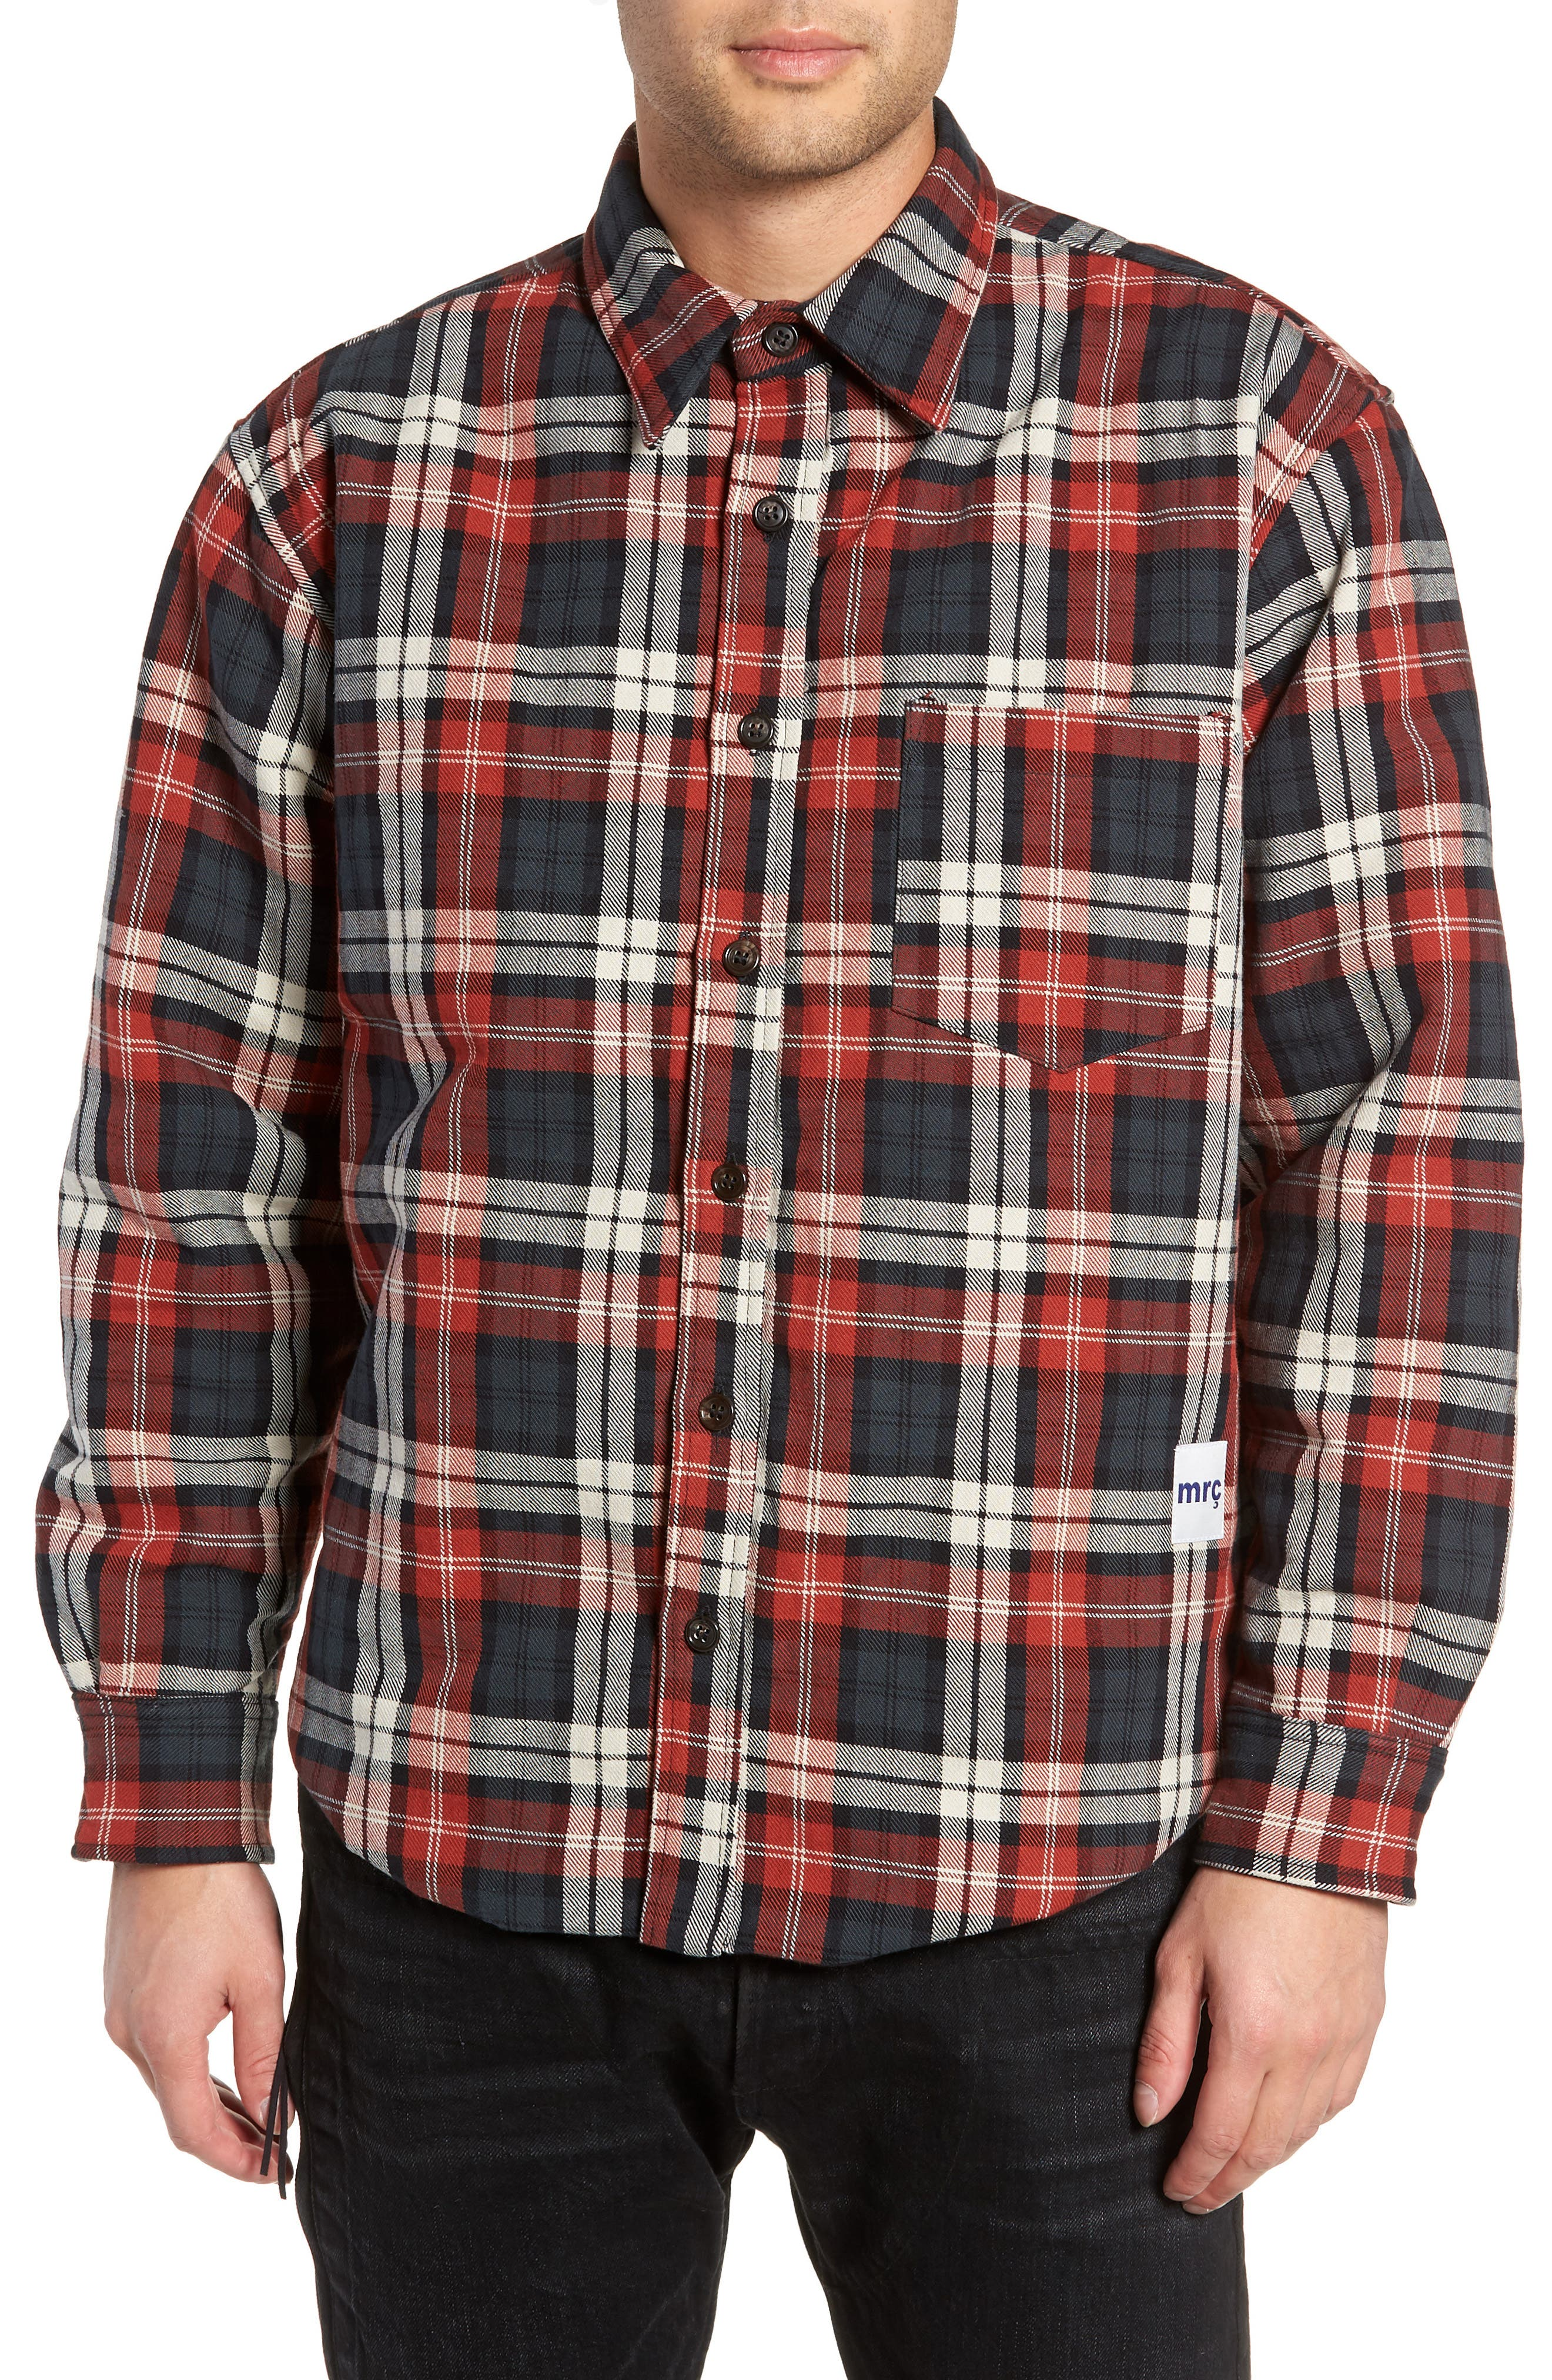 Puffy Classic Fit Work Shirt,                             Alternate thumbnail 4, color,                             RED PLAID